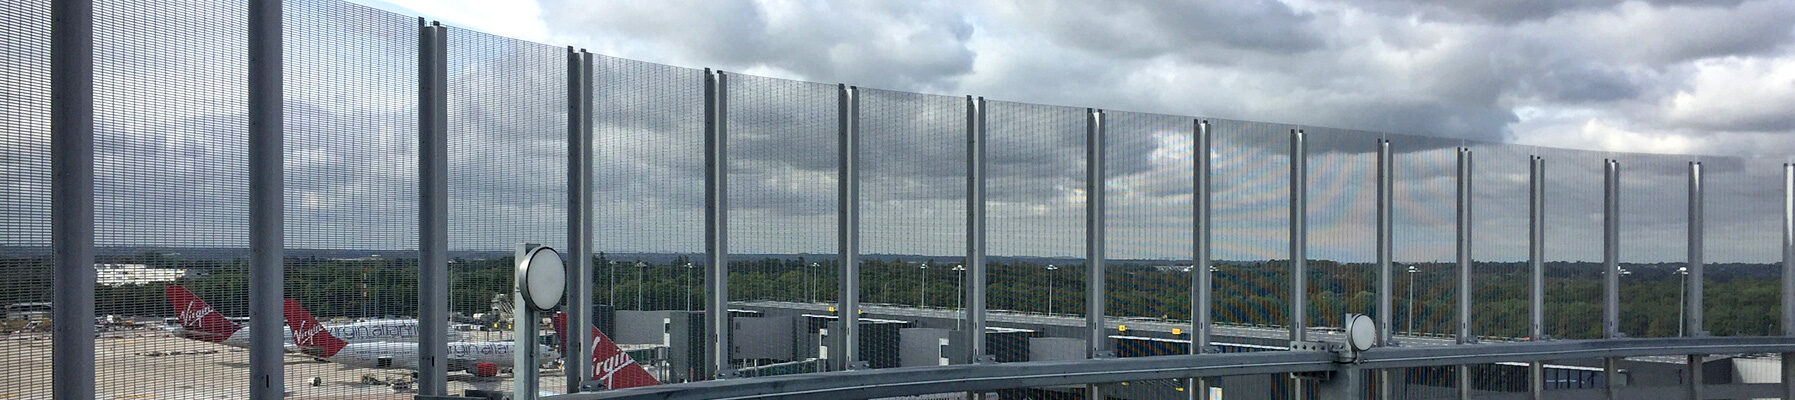 Stereo-3-steel-grating-security-screen-Manchester-Airport-banner2c